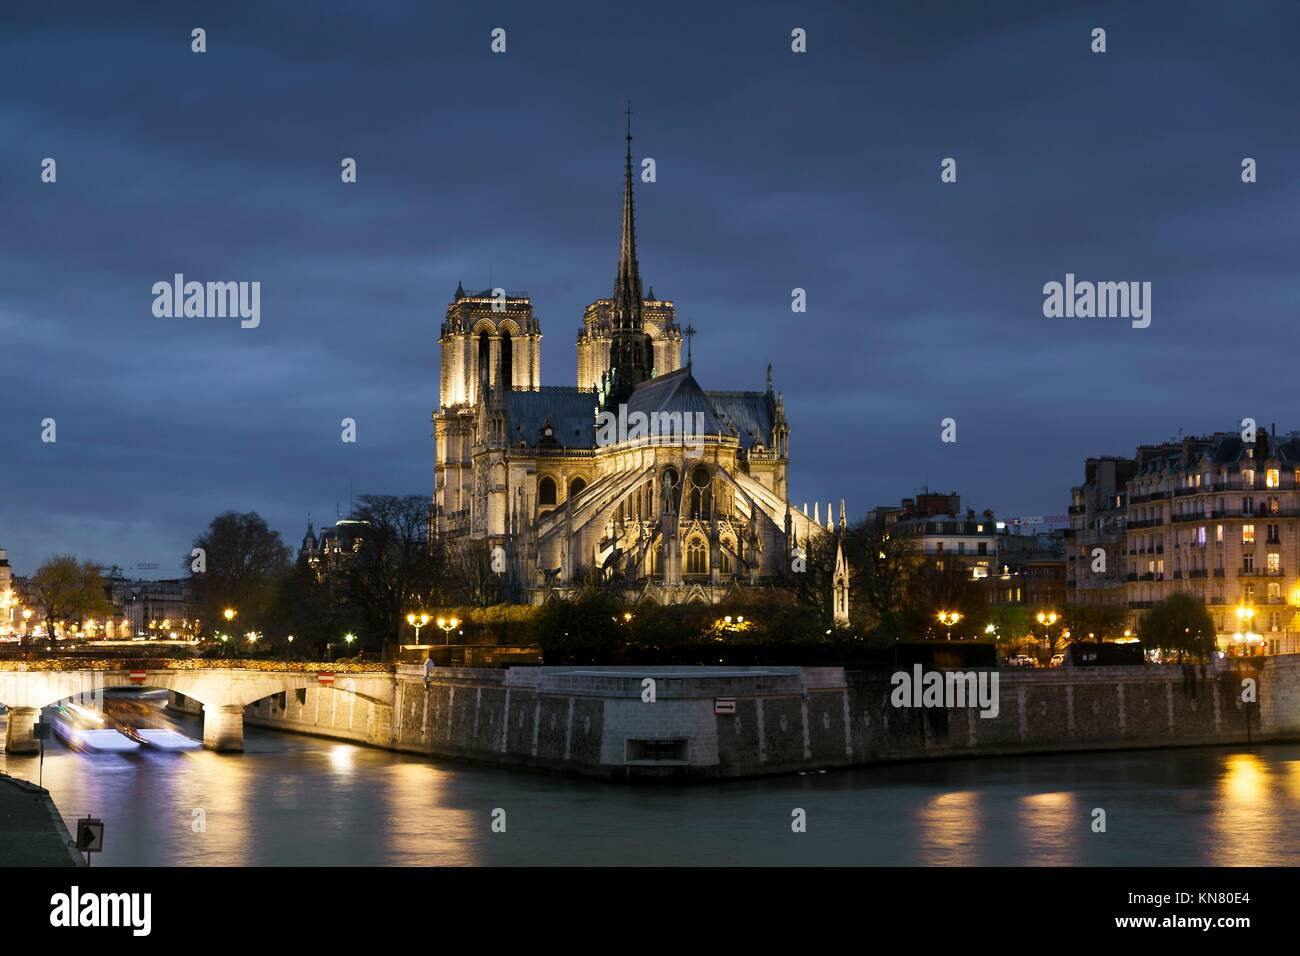 Notre dame Cathedral, Paris, Ile de France, France. - Stock Image